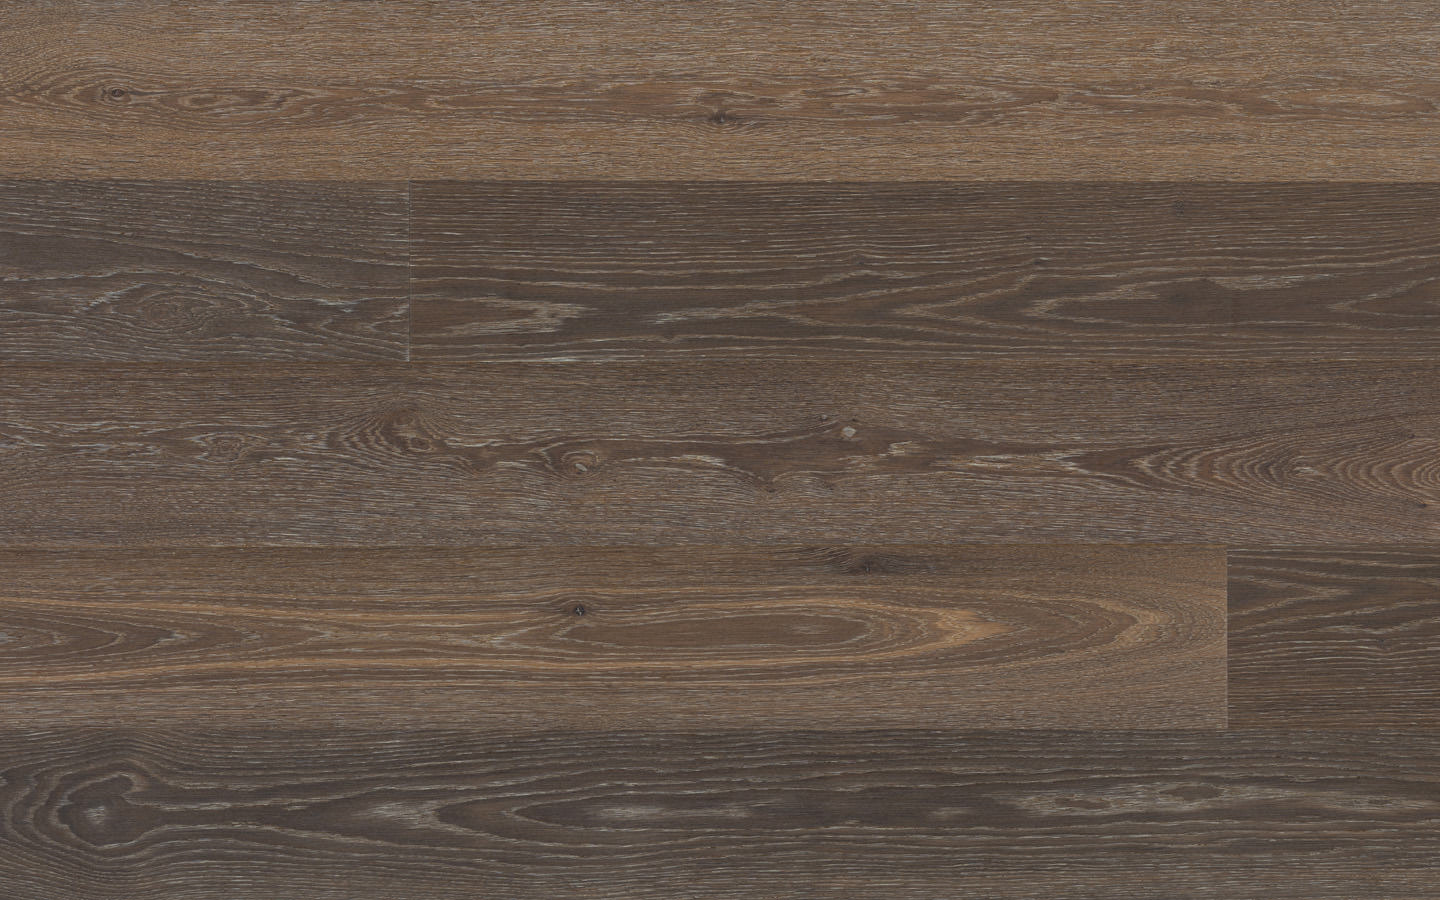 Villa by adler - Oak Bretagne premium wire brushed color oiled - 15 x 186 x 2200 mm